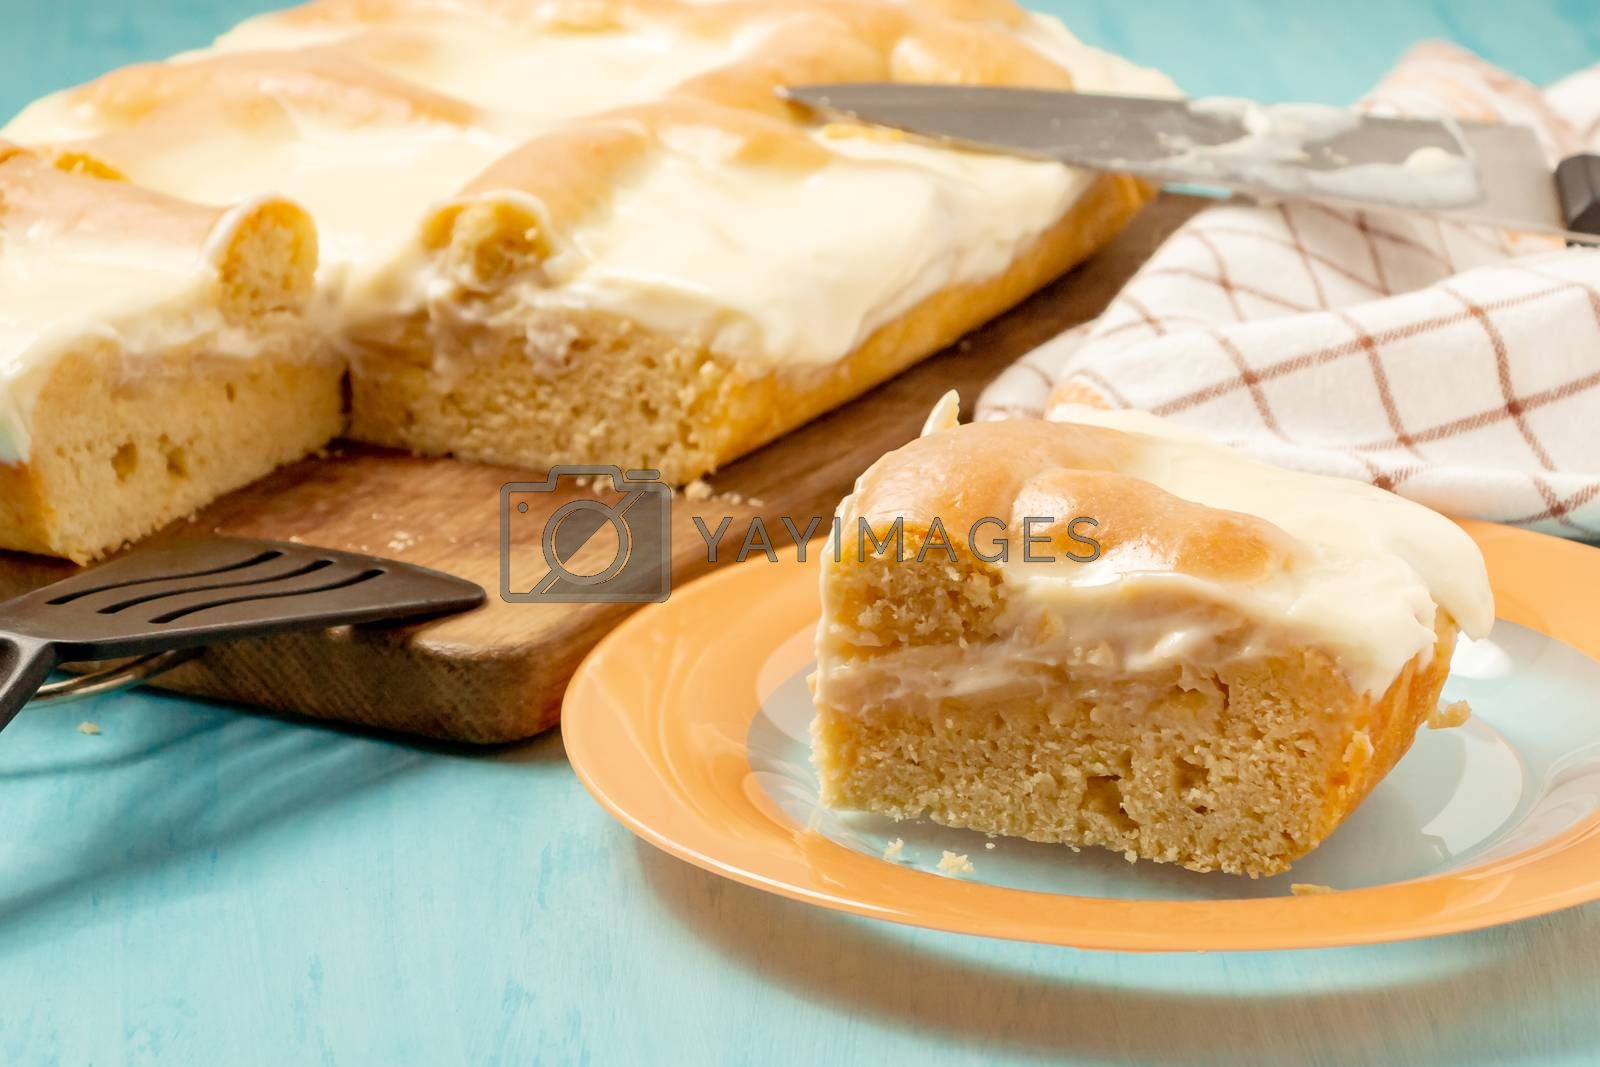 Sliced piece of apple pie with sour cream on a plate - photo, image by galsand